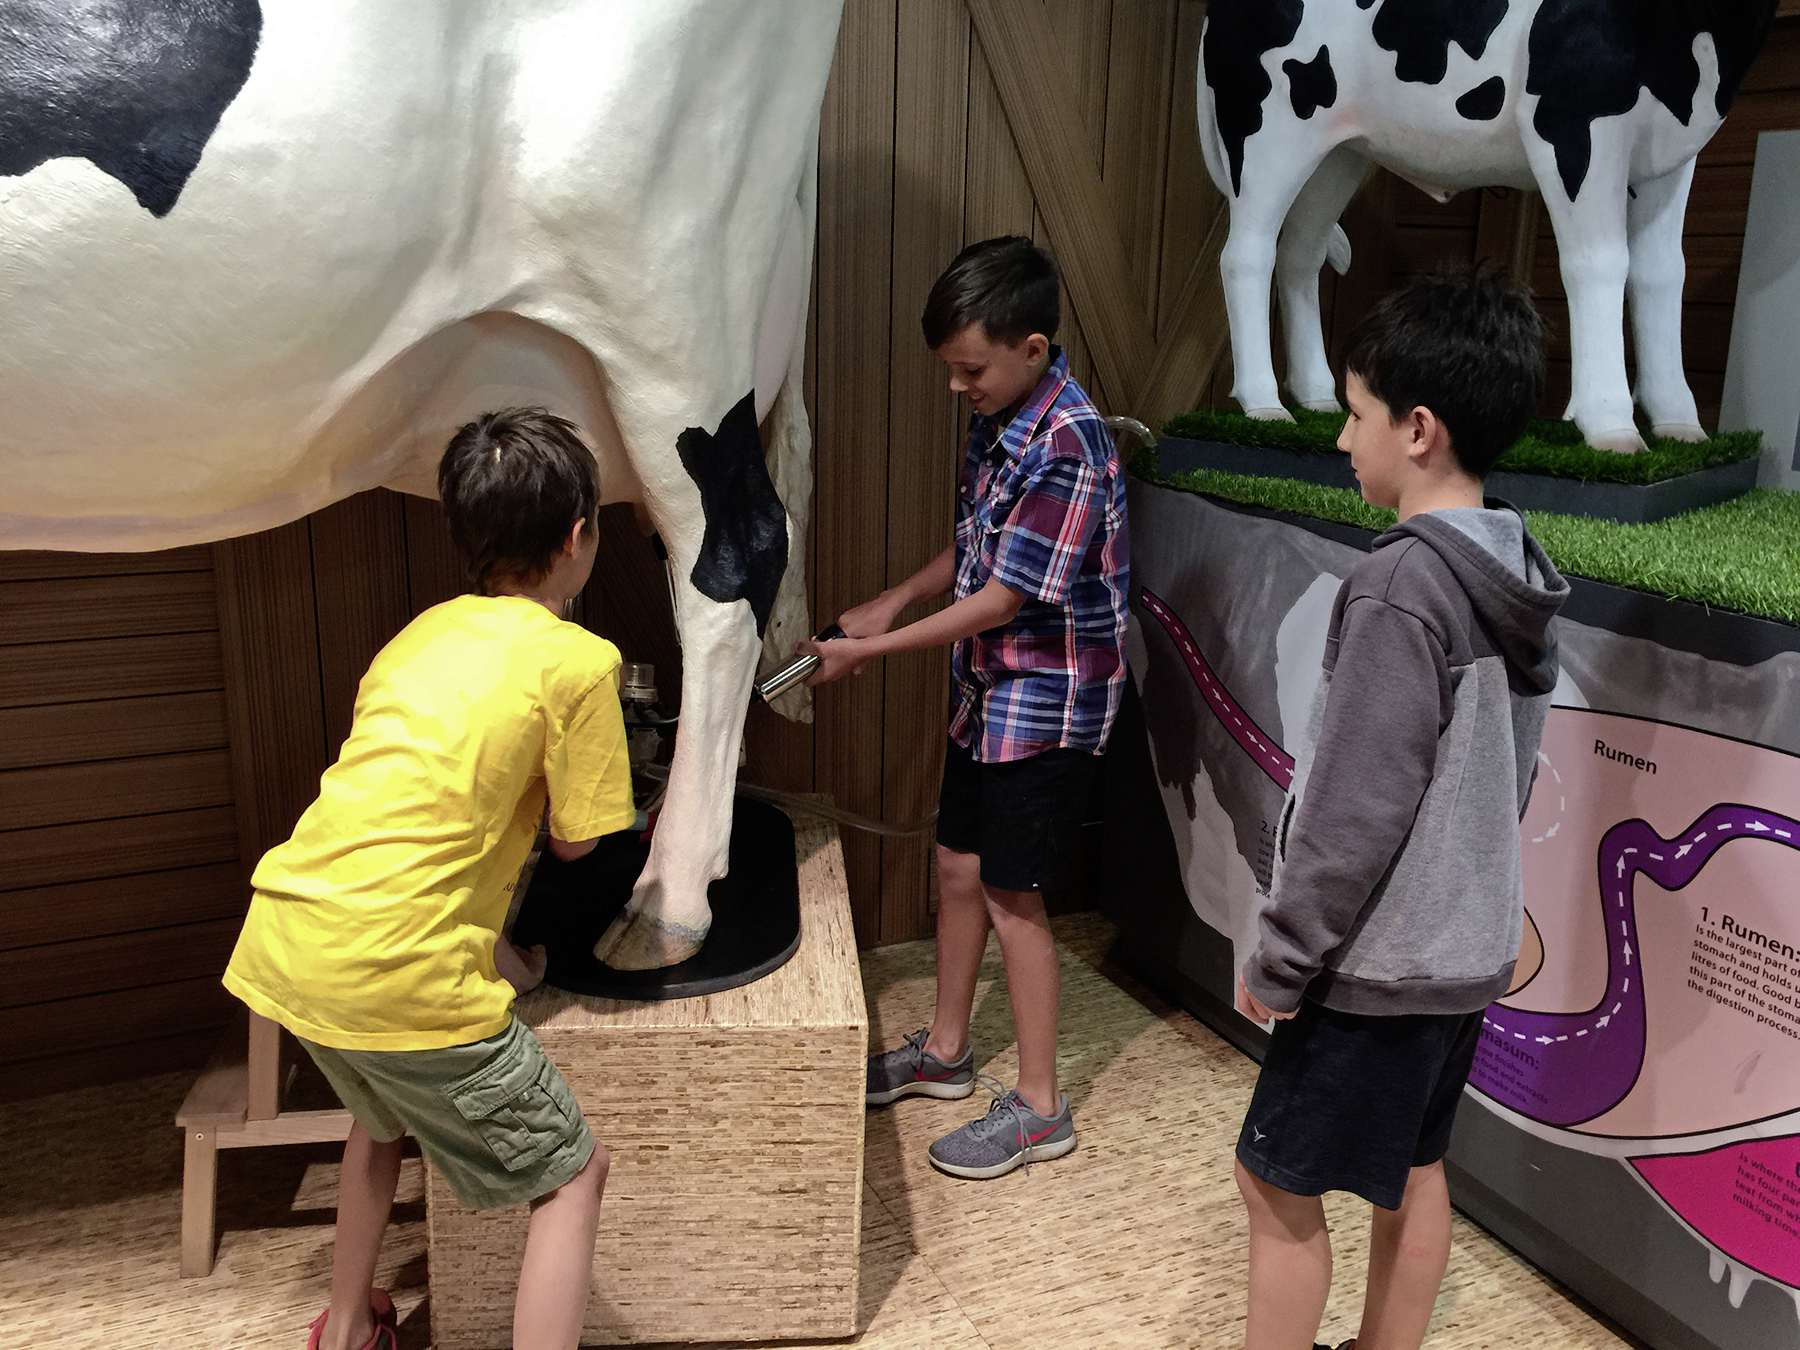 The Bruce D. Campbell Farm and Food Discovery Centre usually sees a lot of school tour groups in June. They've moved many of their lessons and activities online for the public.